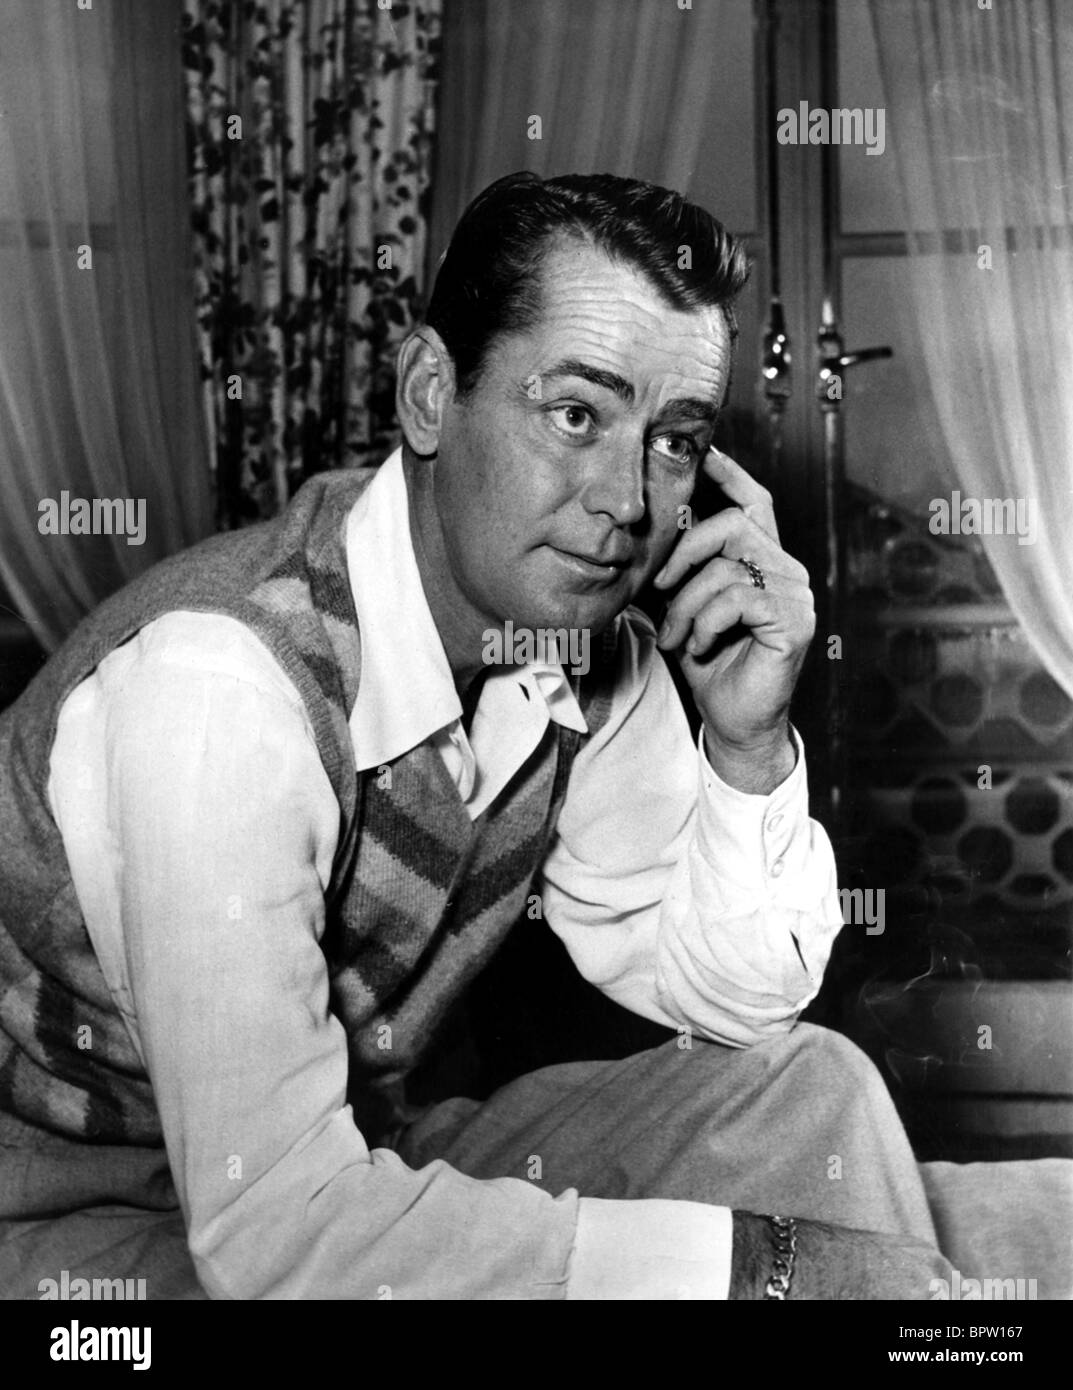 ALAN LADD ACTOR (1955) - Stock Image